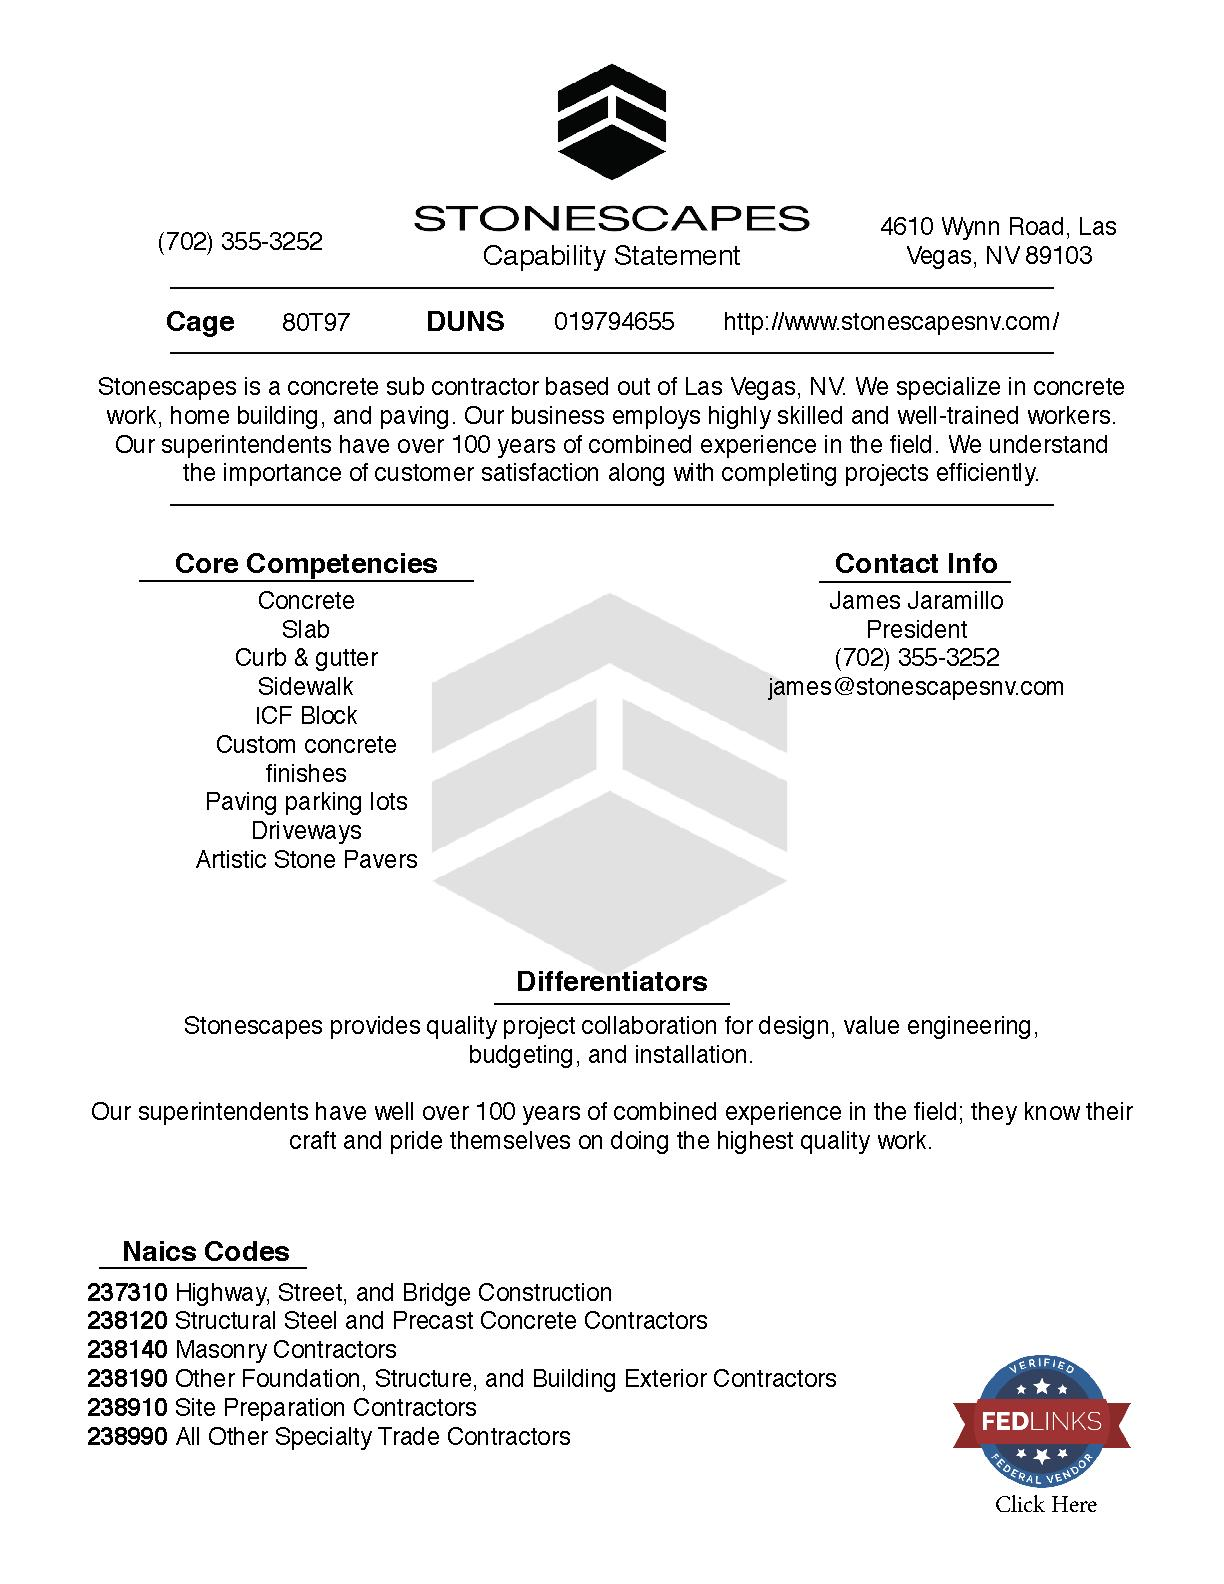 Stonescapes capability statement